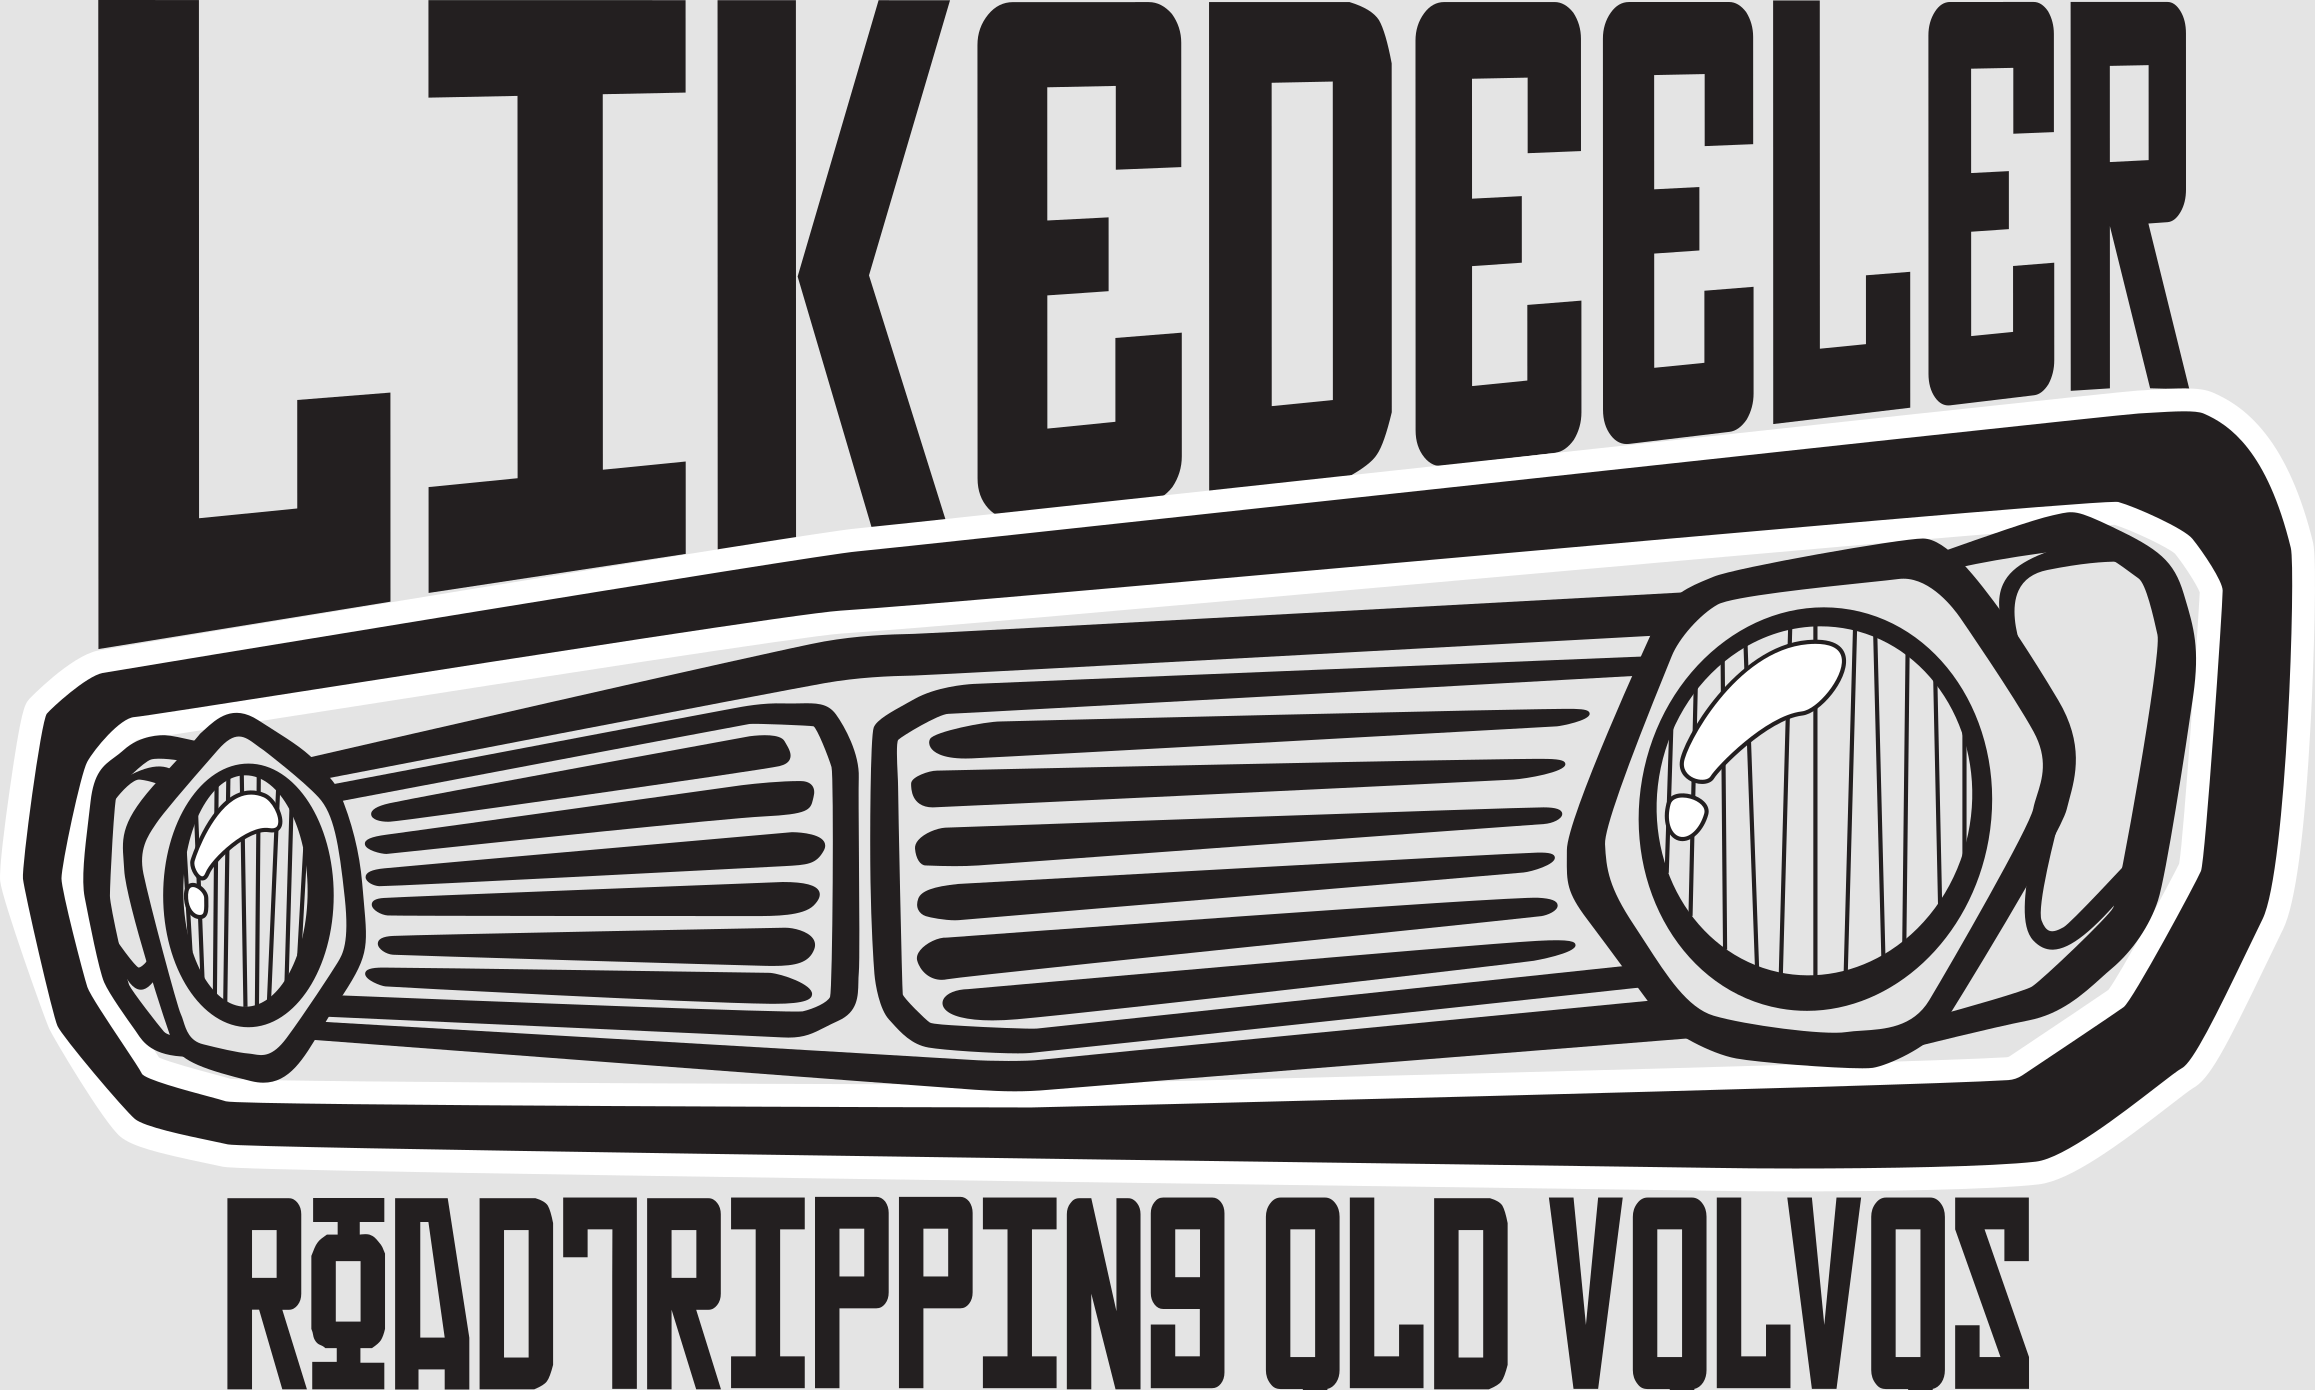 Likedeelerblog – roadtripping old volvos